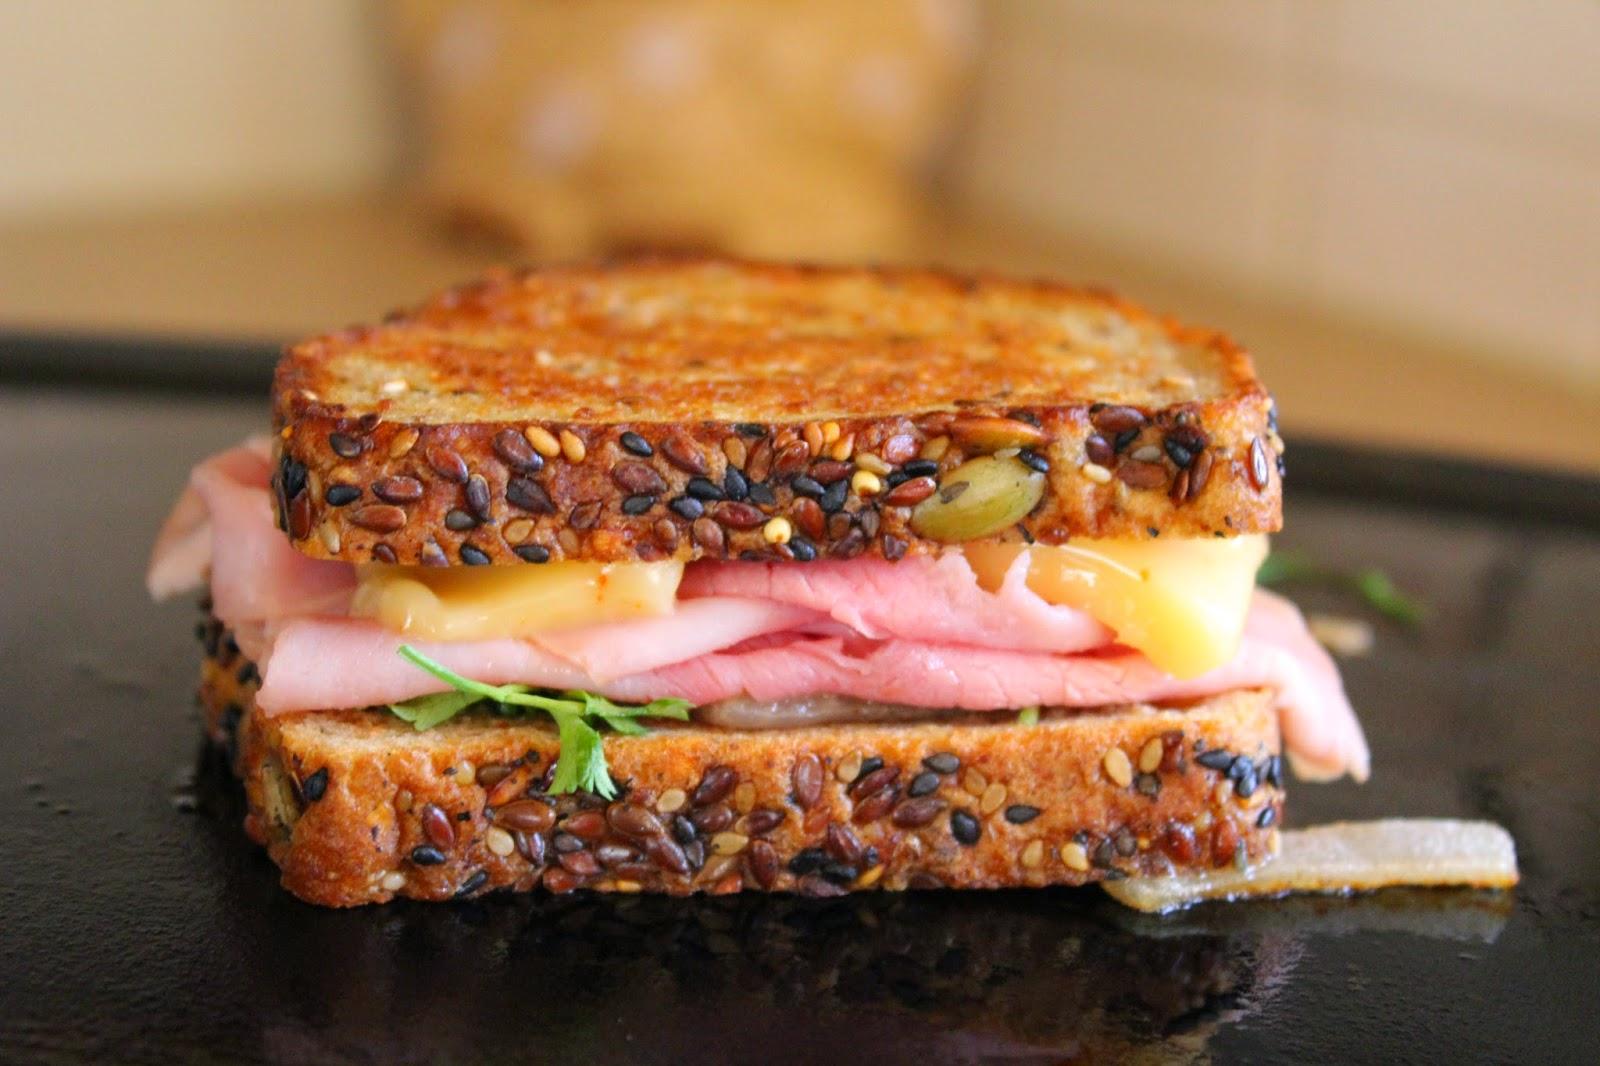 Foodista | 5 Sandwiches to Make with Leftover Easter Ham